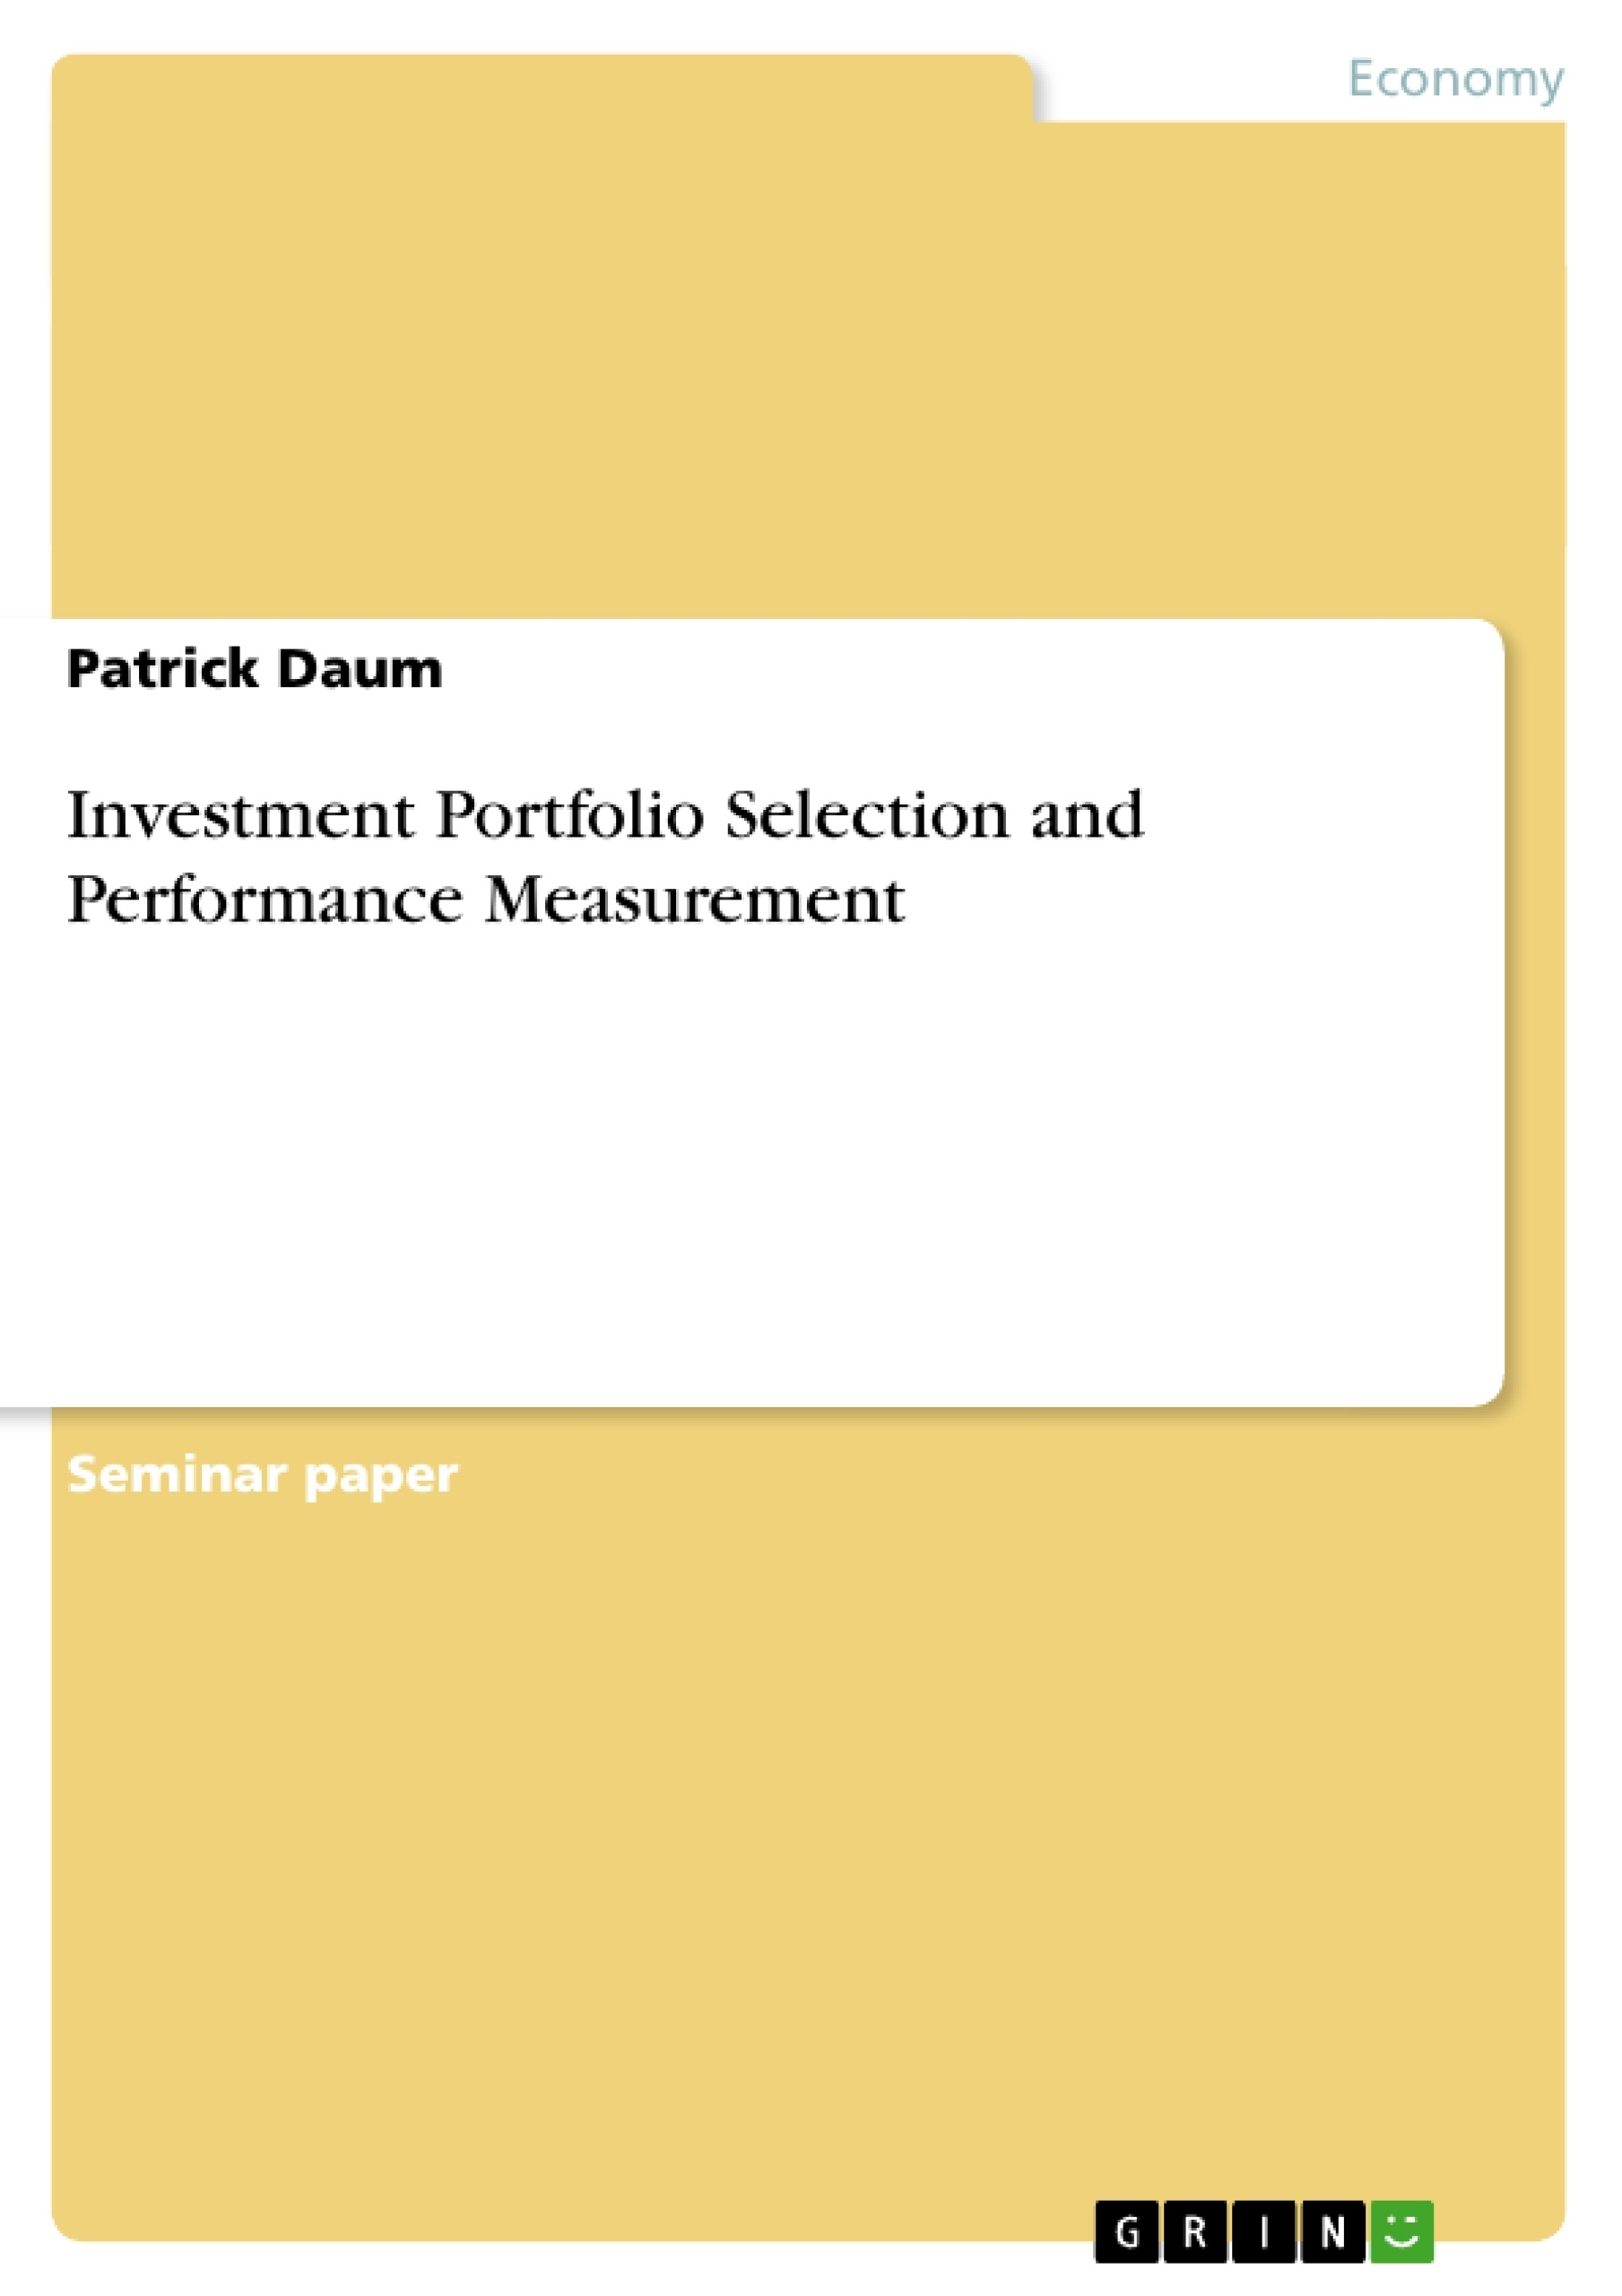 Title: Investment Portfolio Selection and Performance Measurement